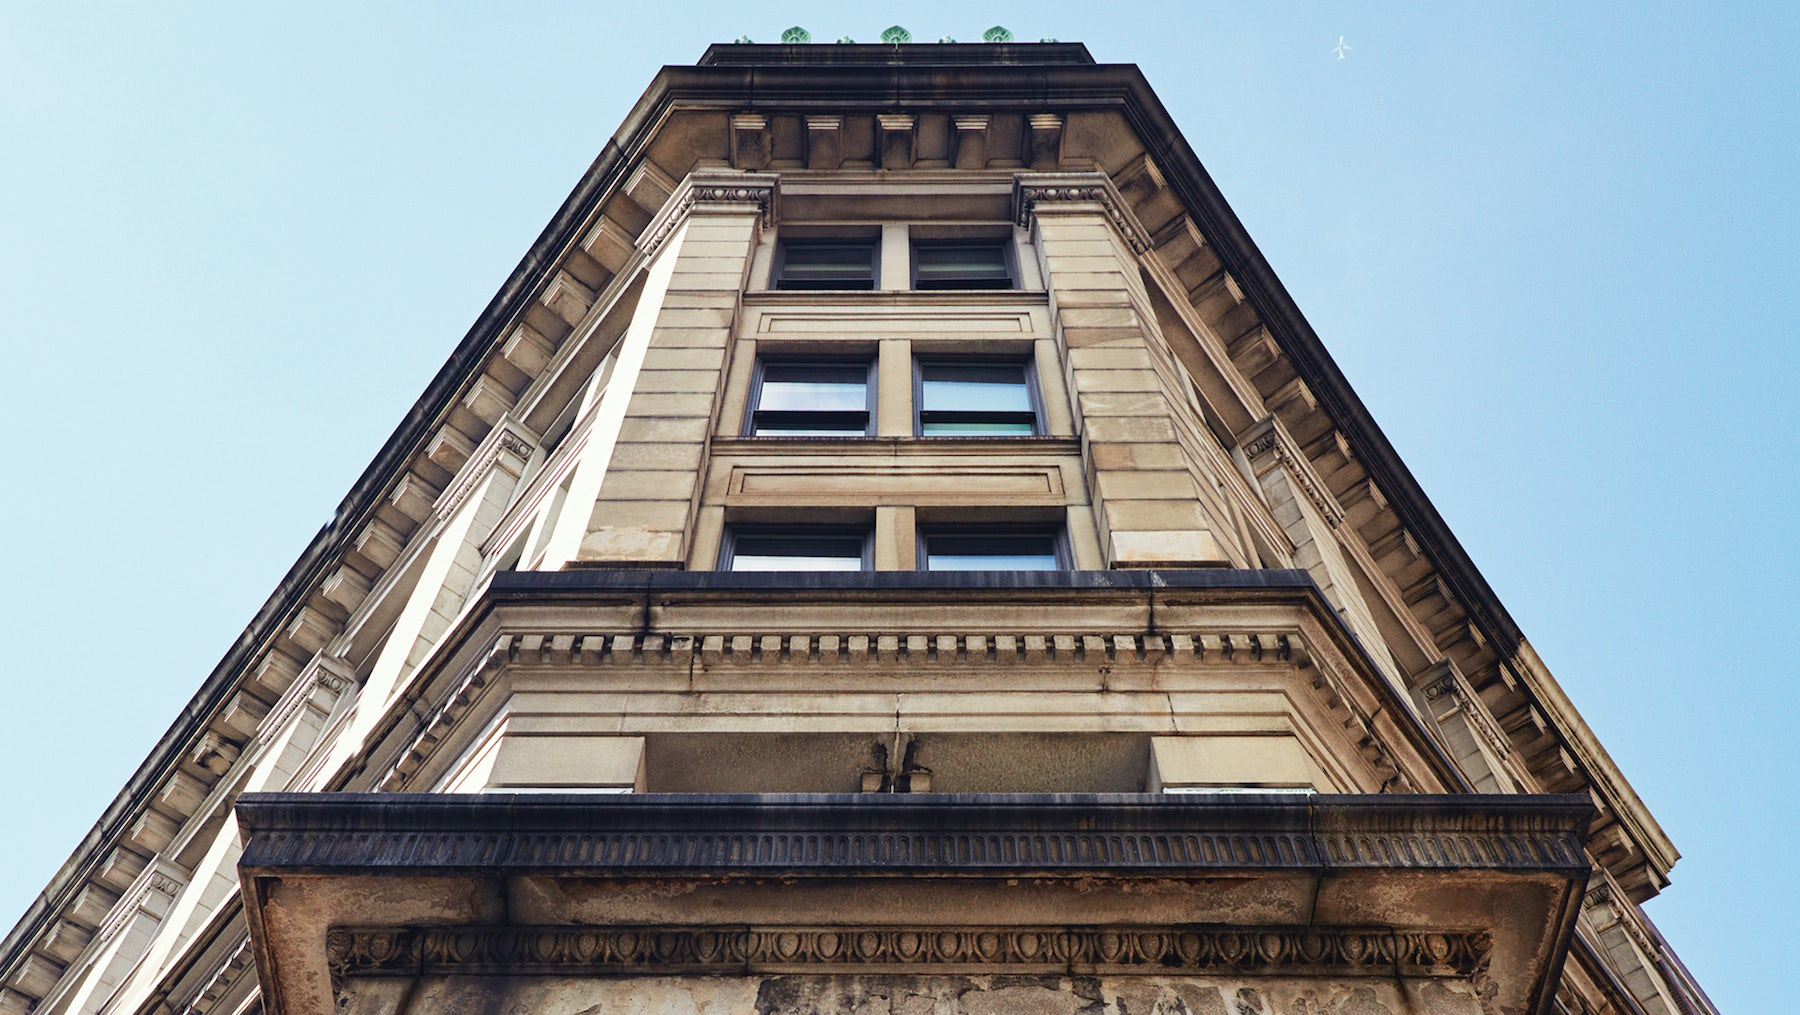 The former Germania Bank at 190 Bowery, New York | Photo: Kevin Trageser